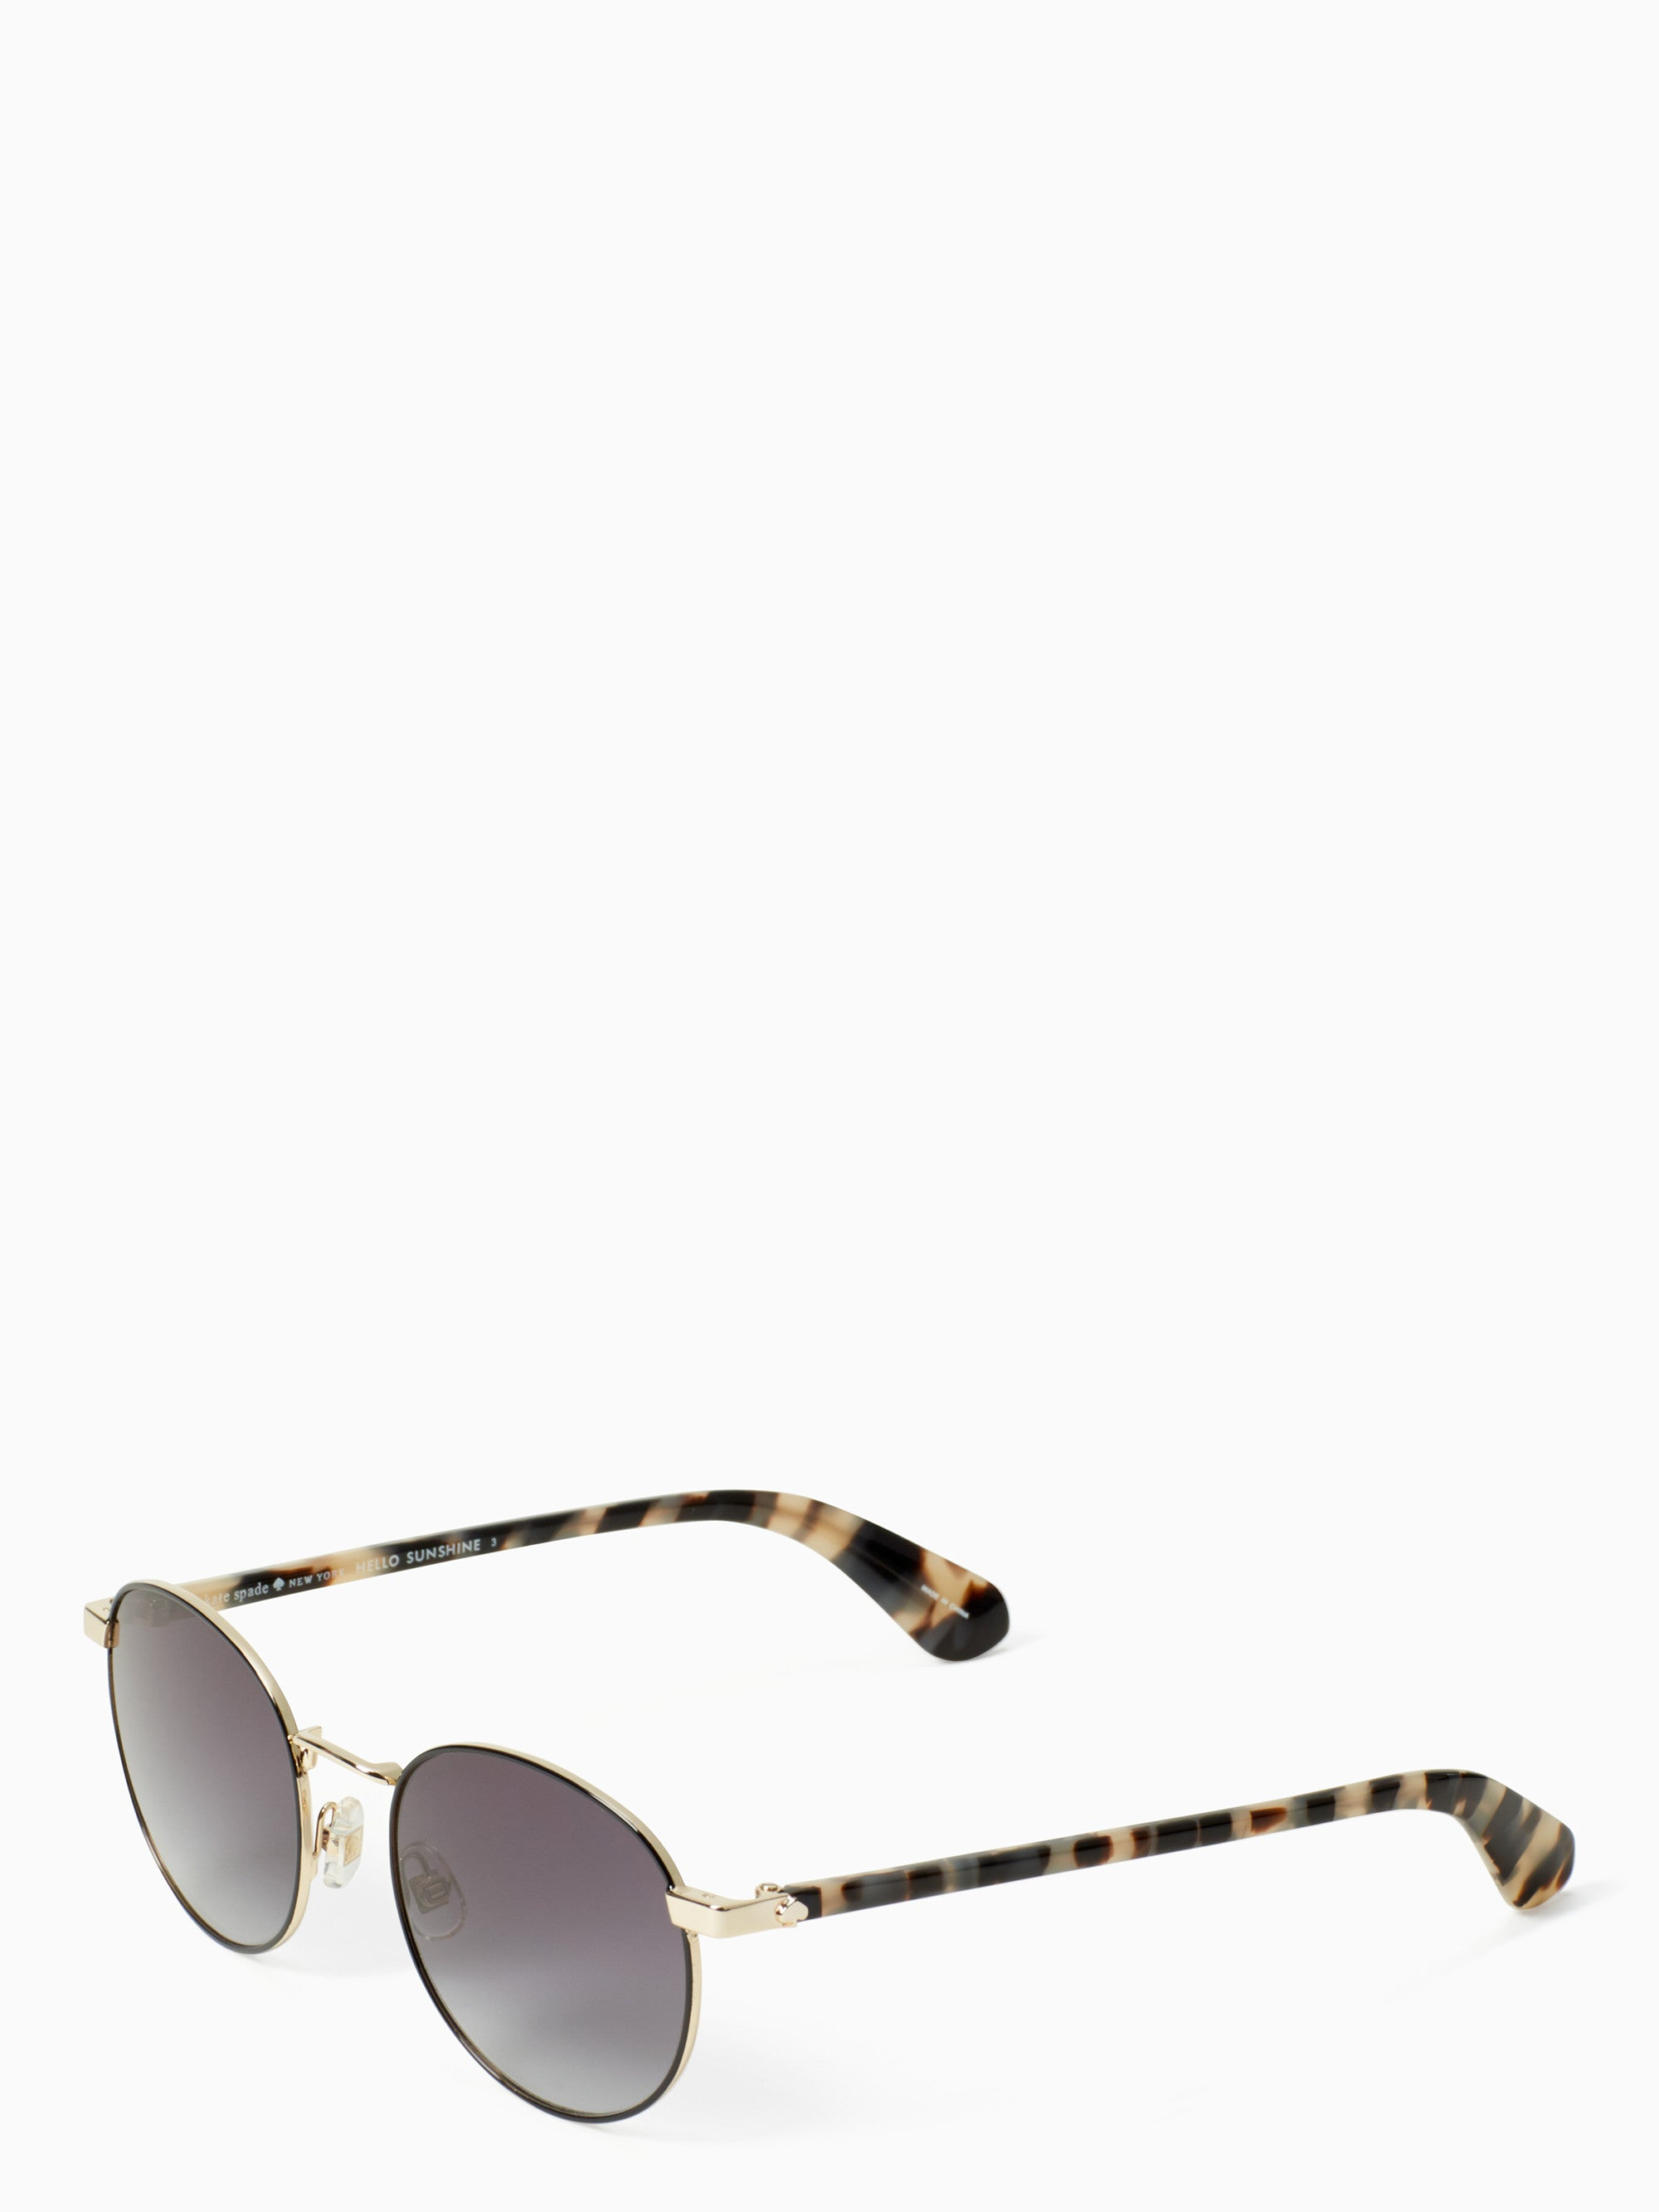 Kate Spade New York Adelais Black Havana Sunglasses